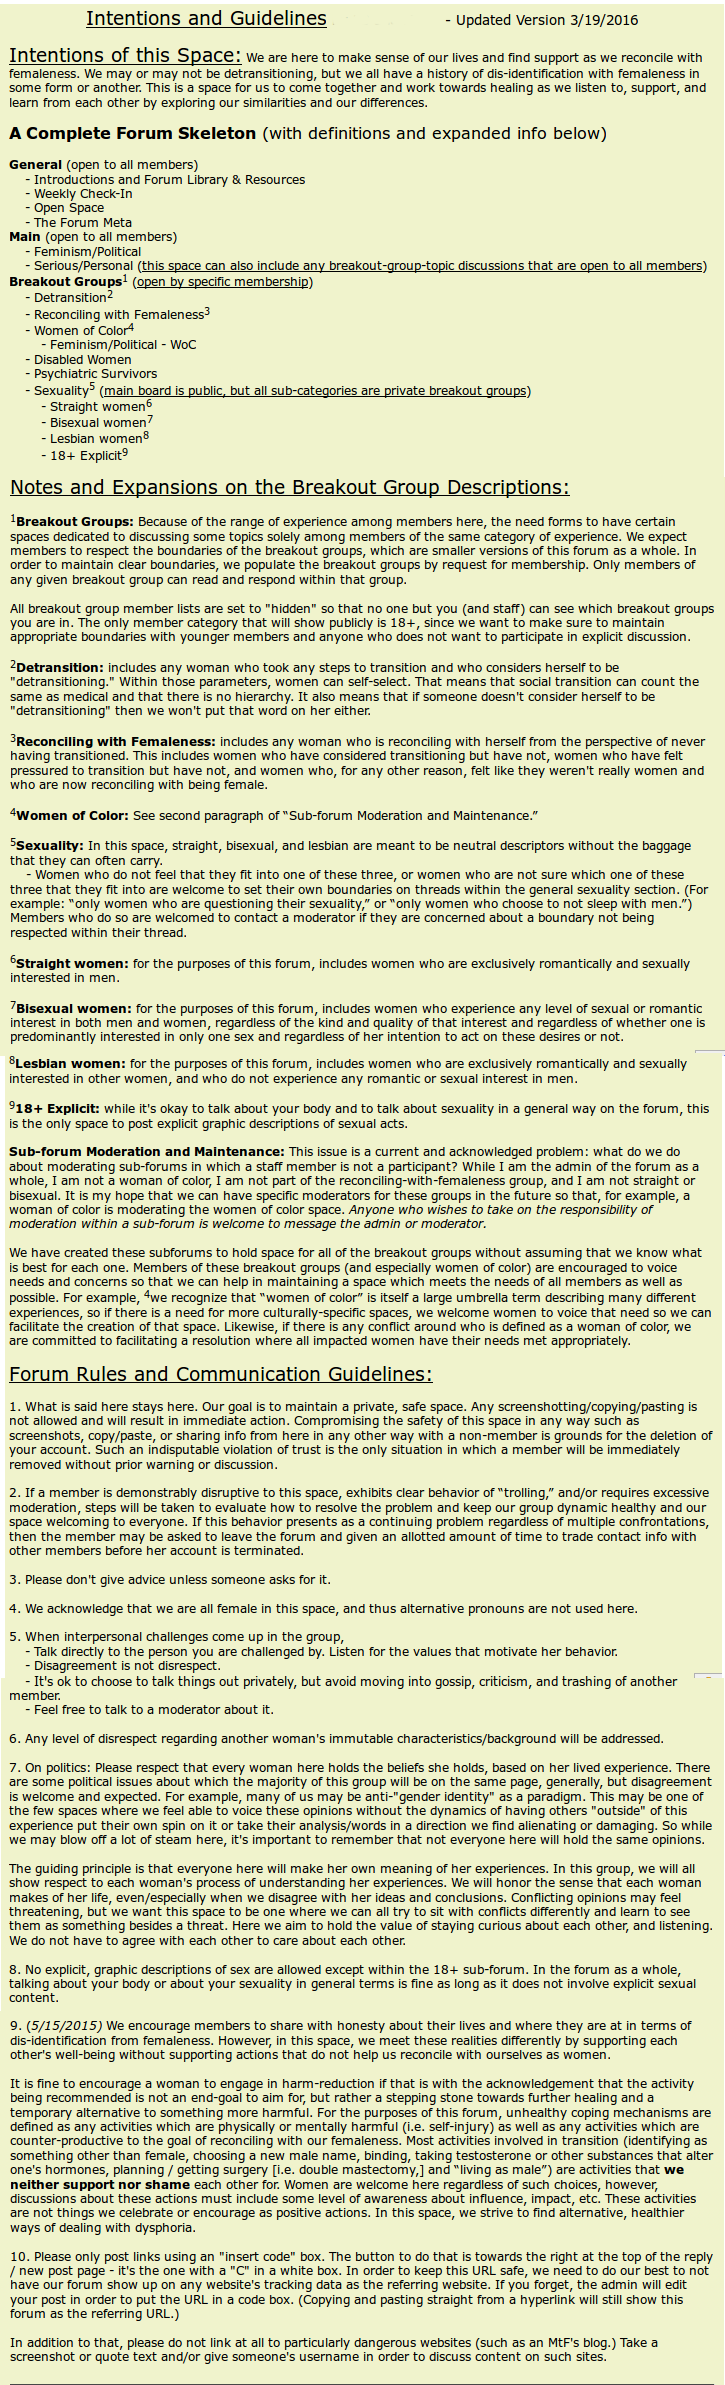 Screenshot of Forum Intentions and Guidelines